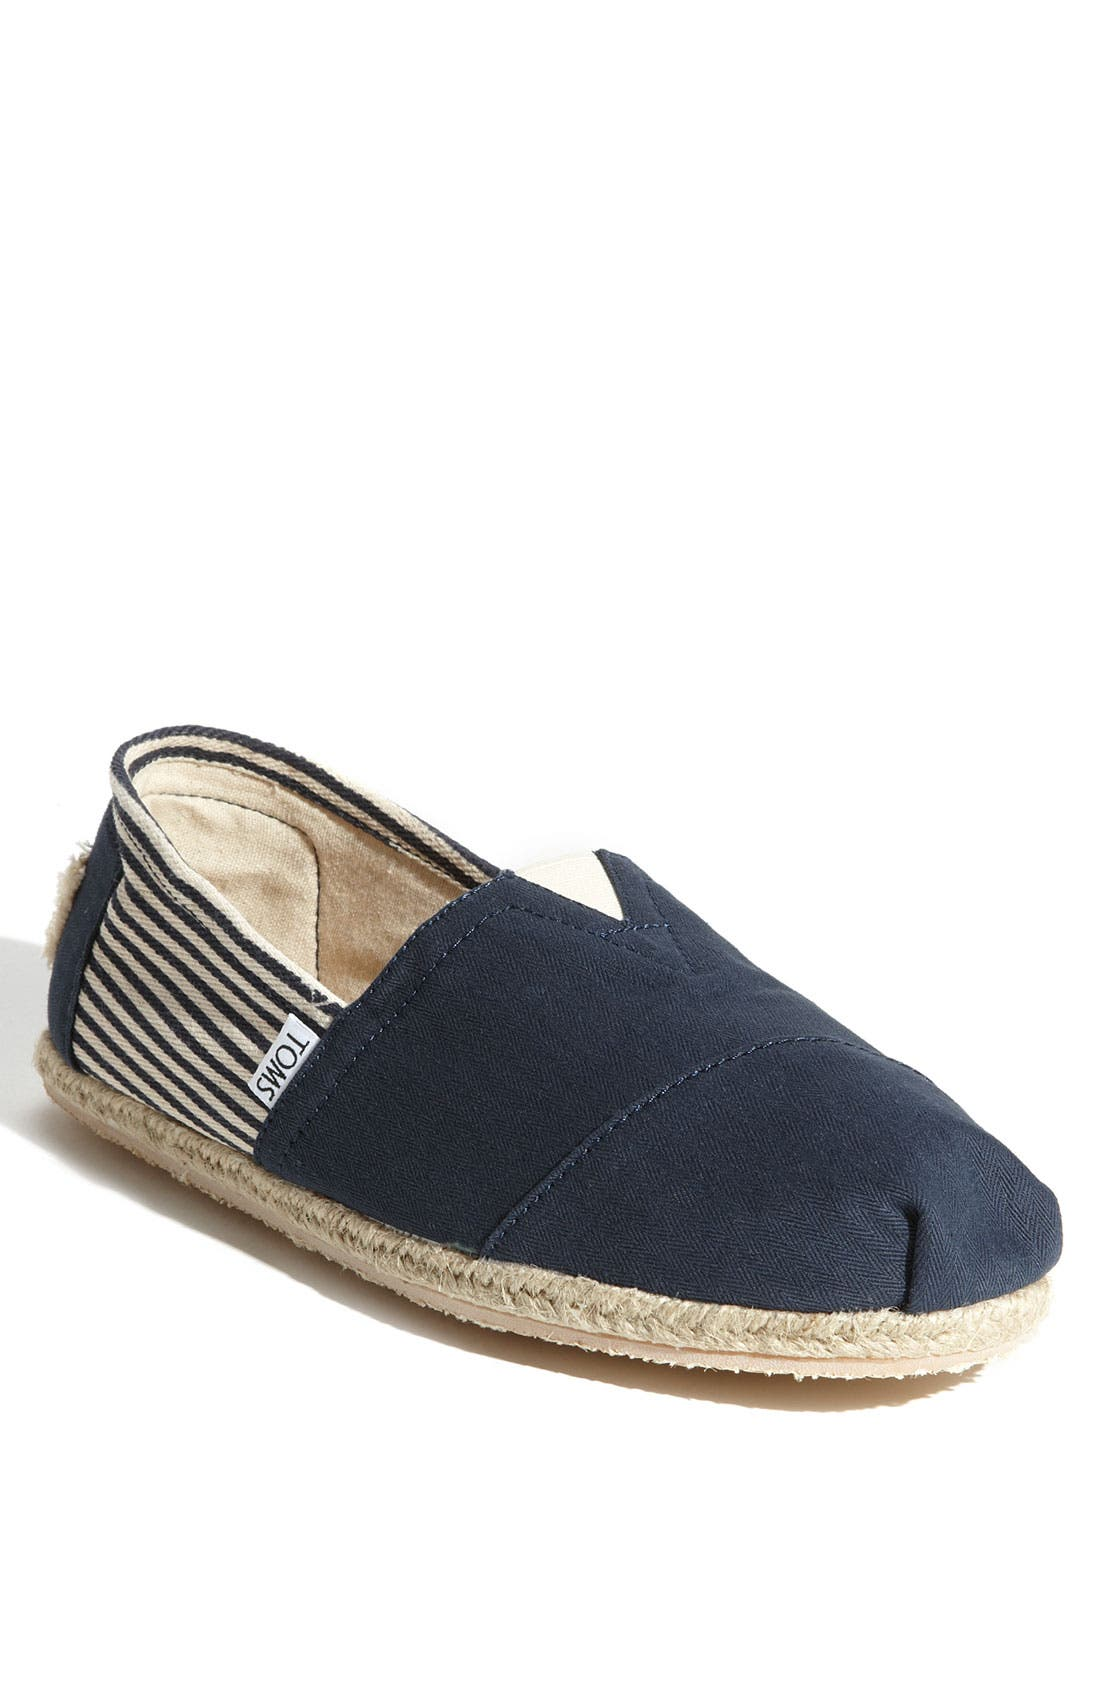 Alternate Image 1 Selected - TOMS 'Classic' Slip-On (Men)